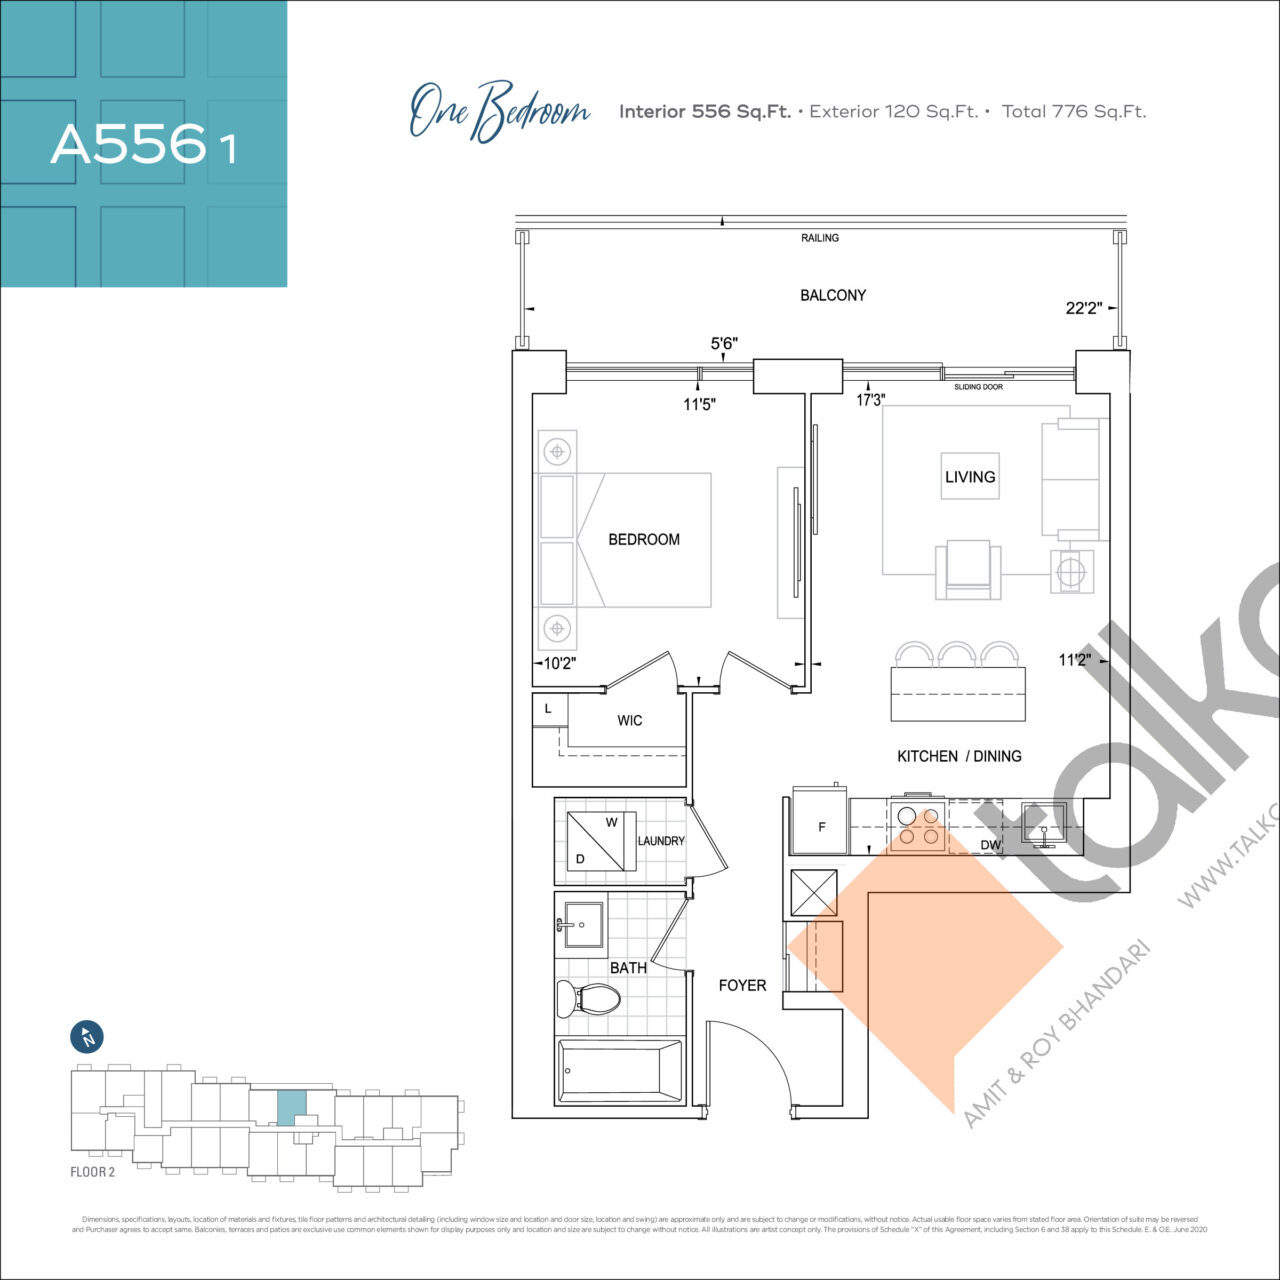 A556 1 Floor Plan at Dunwest Condos - 556 sq.ft